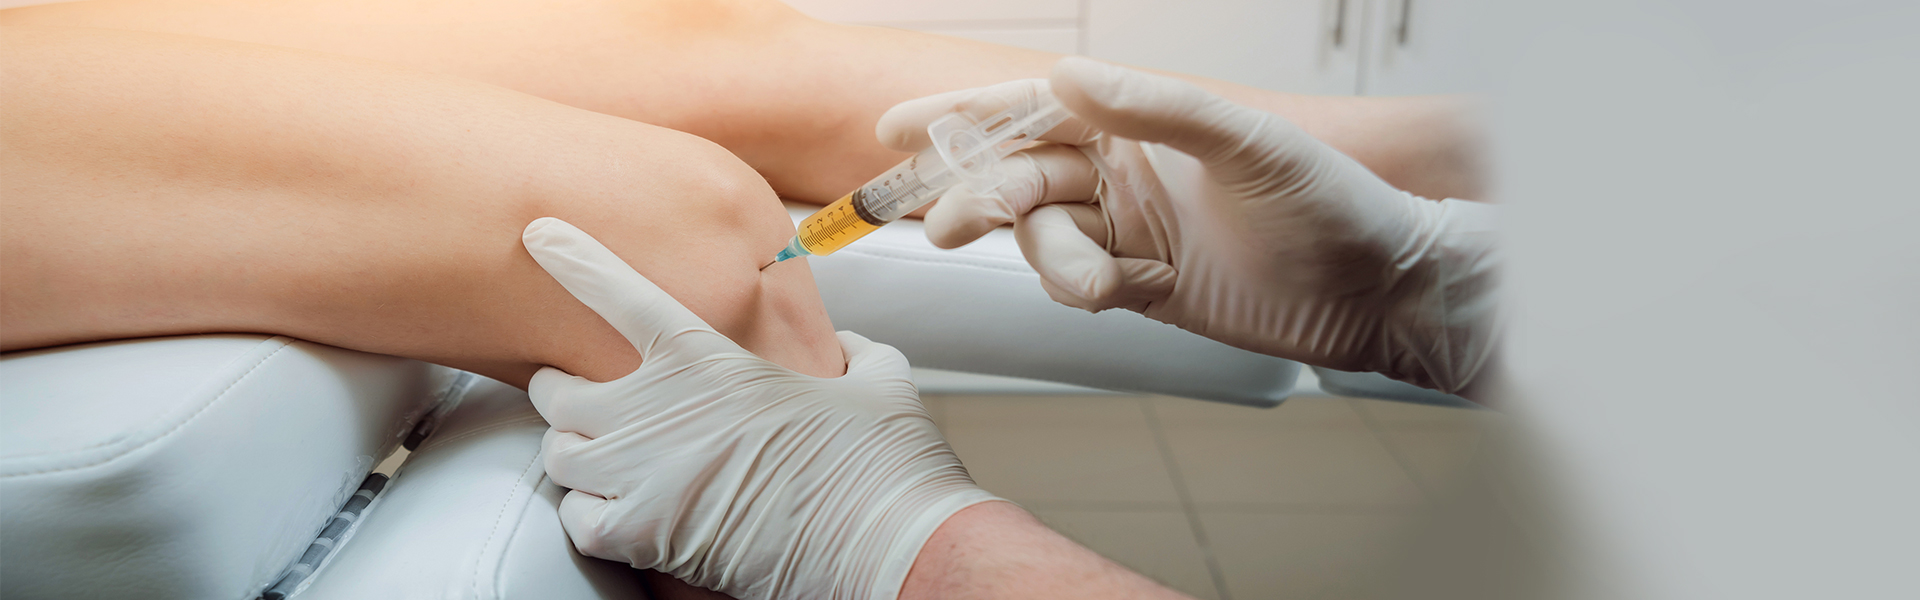 Treating Knee Pains And Stiffness With Knee Injection Programs